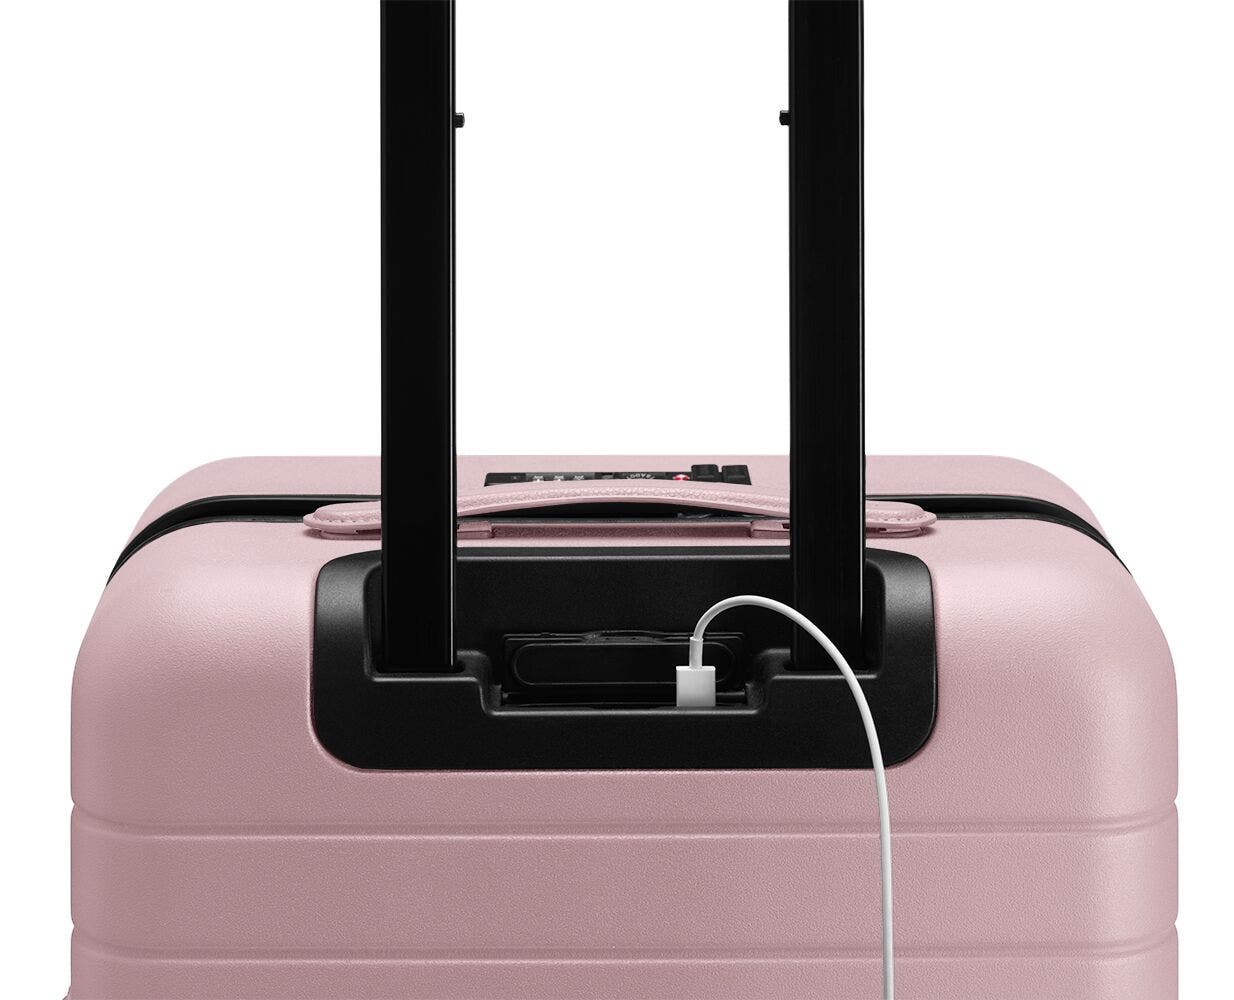 Video showing a finger pressing the battery to eject it from The Carry-On with Pocket in Blush